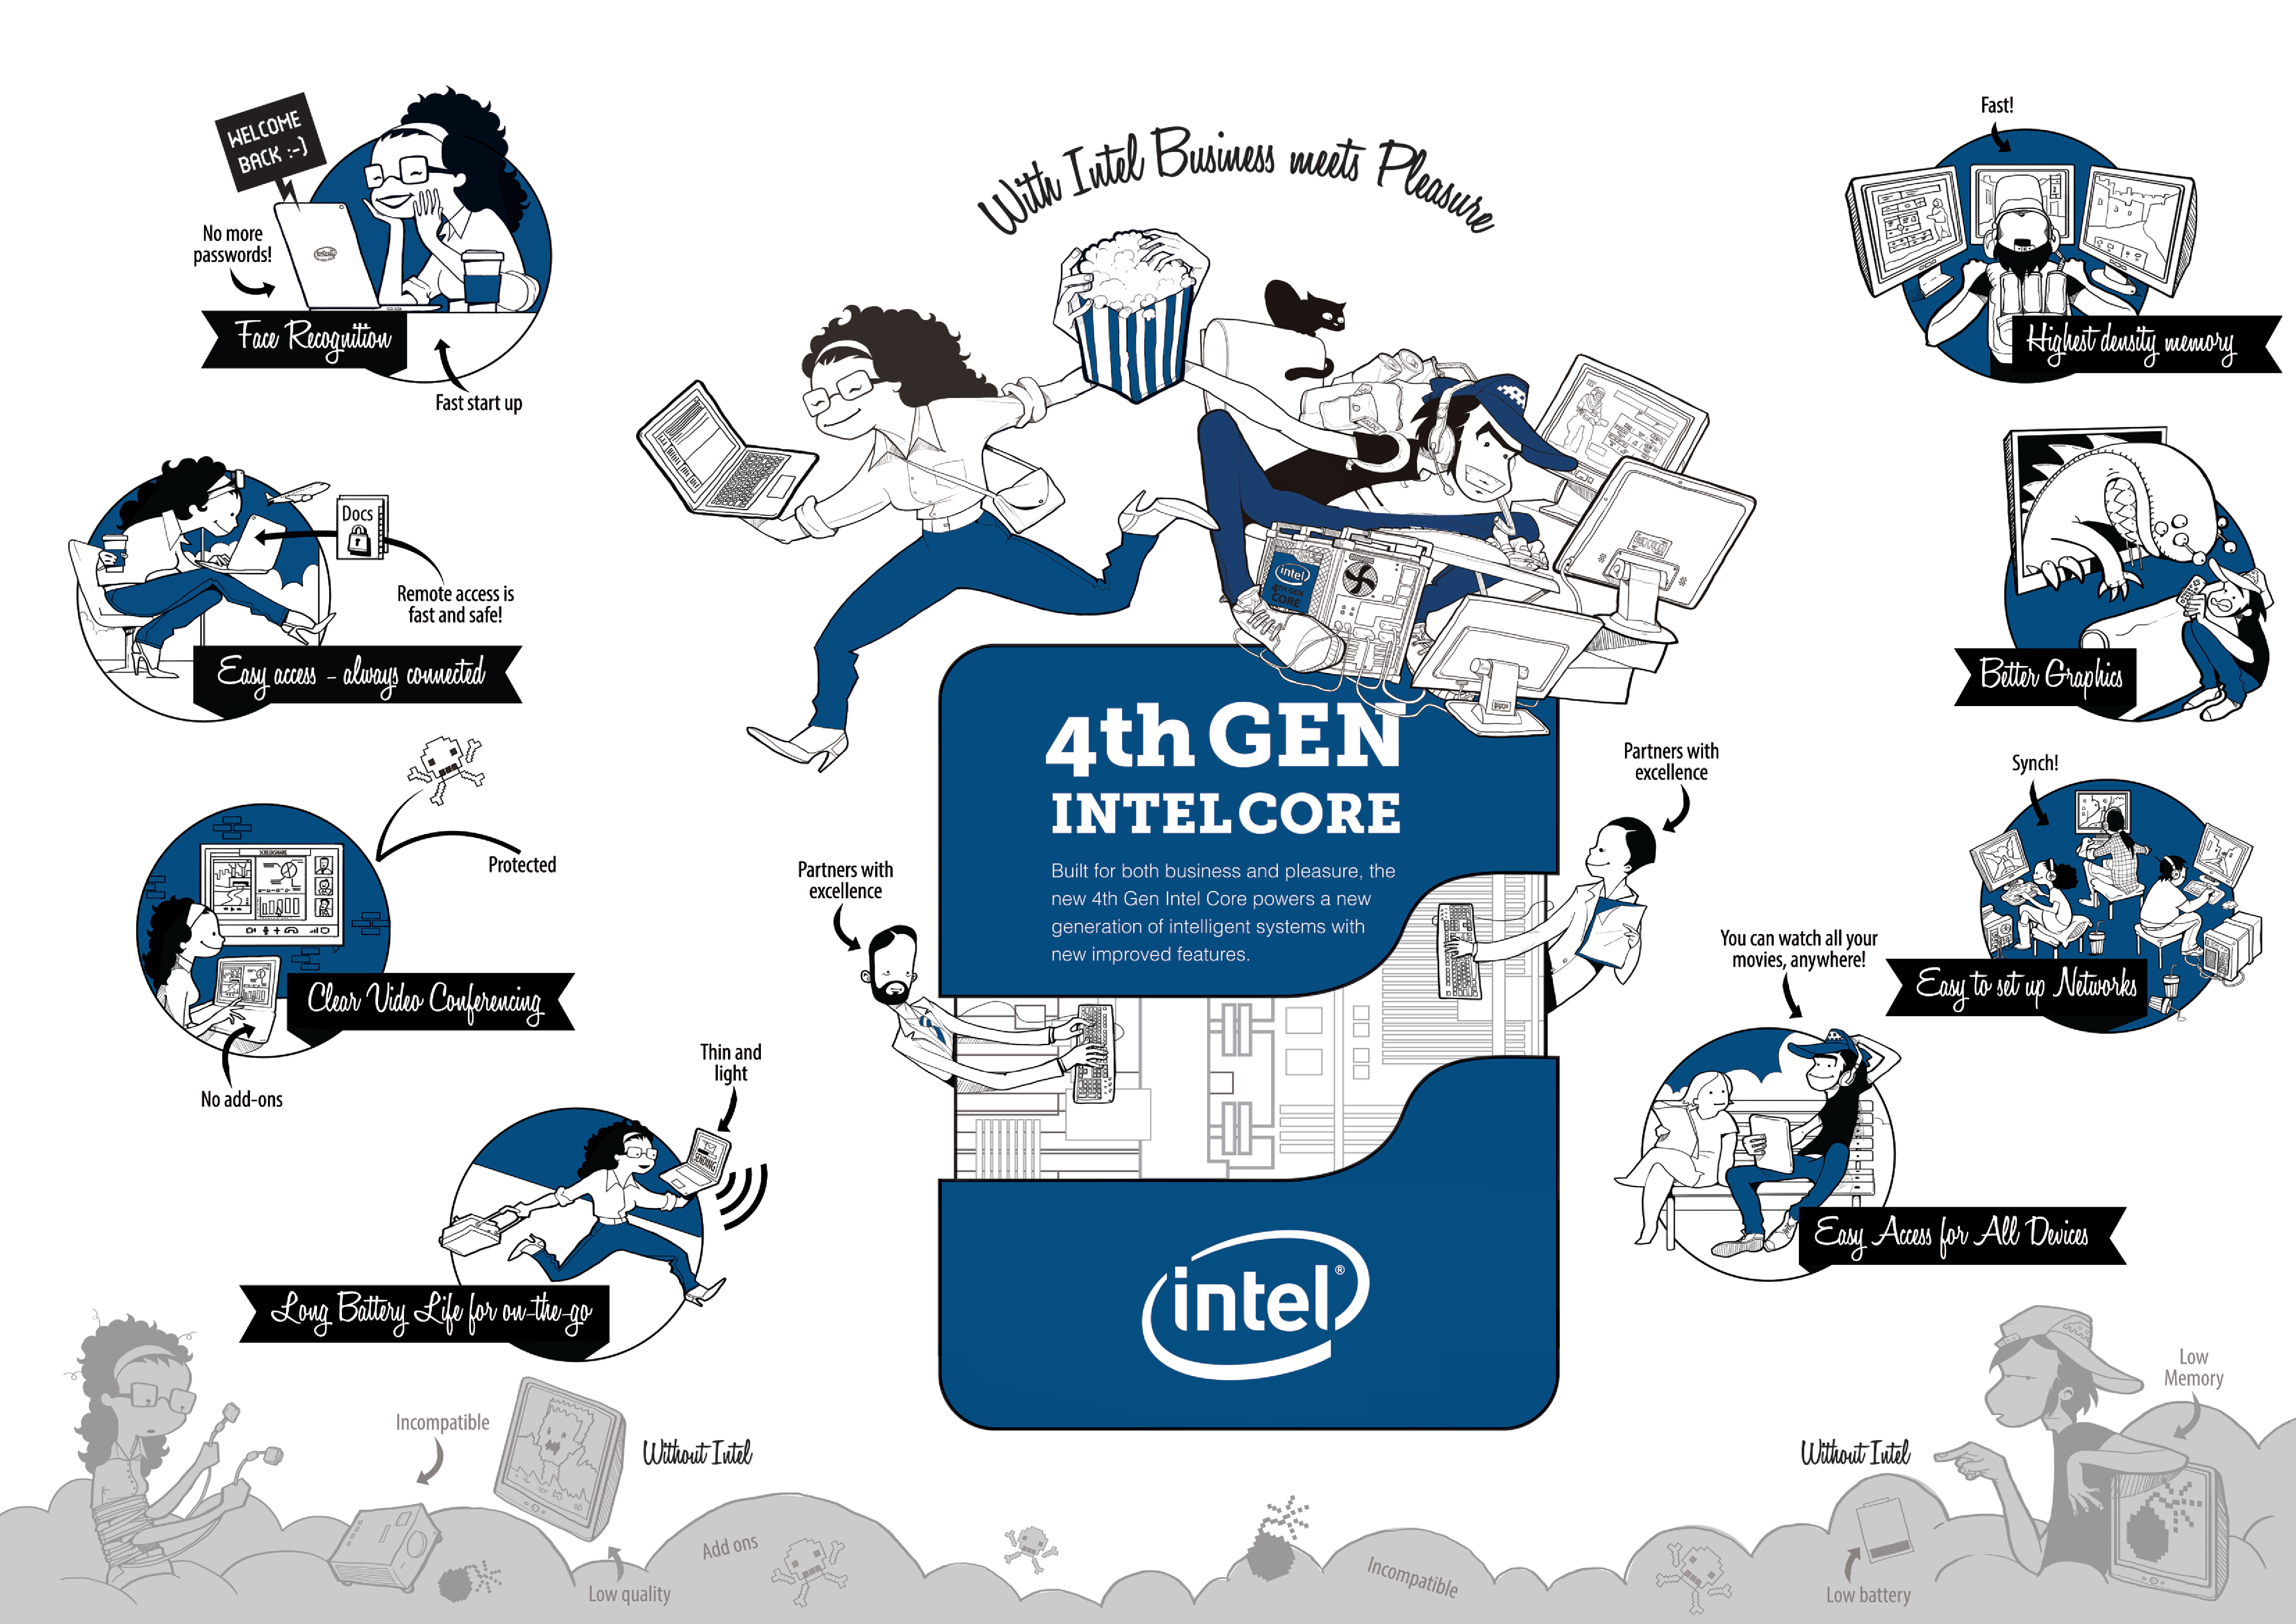 Intel explains the importance of what's inside matters_Ilustration 04102013